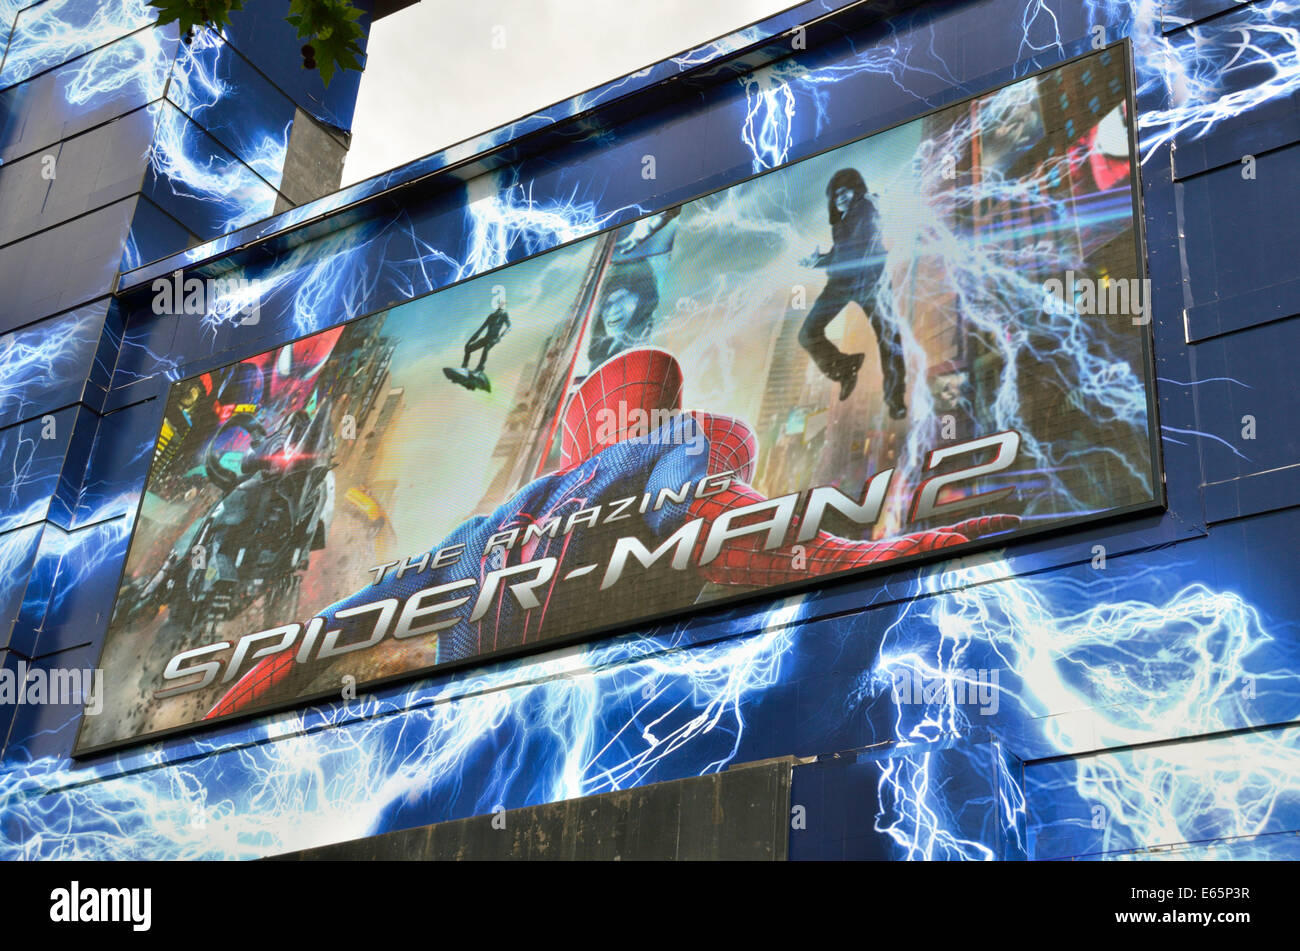 Giant video screen outside the Odeon Leicester Square Cinema promoting the film Spiderman 2 - Stock Image